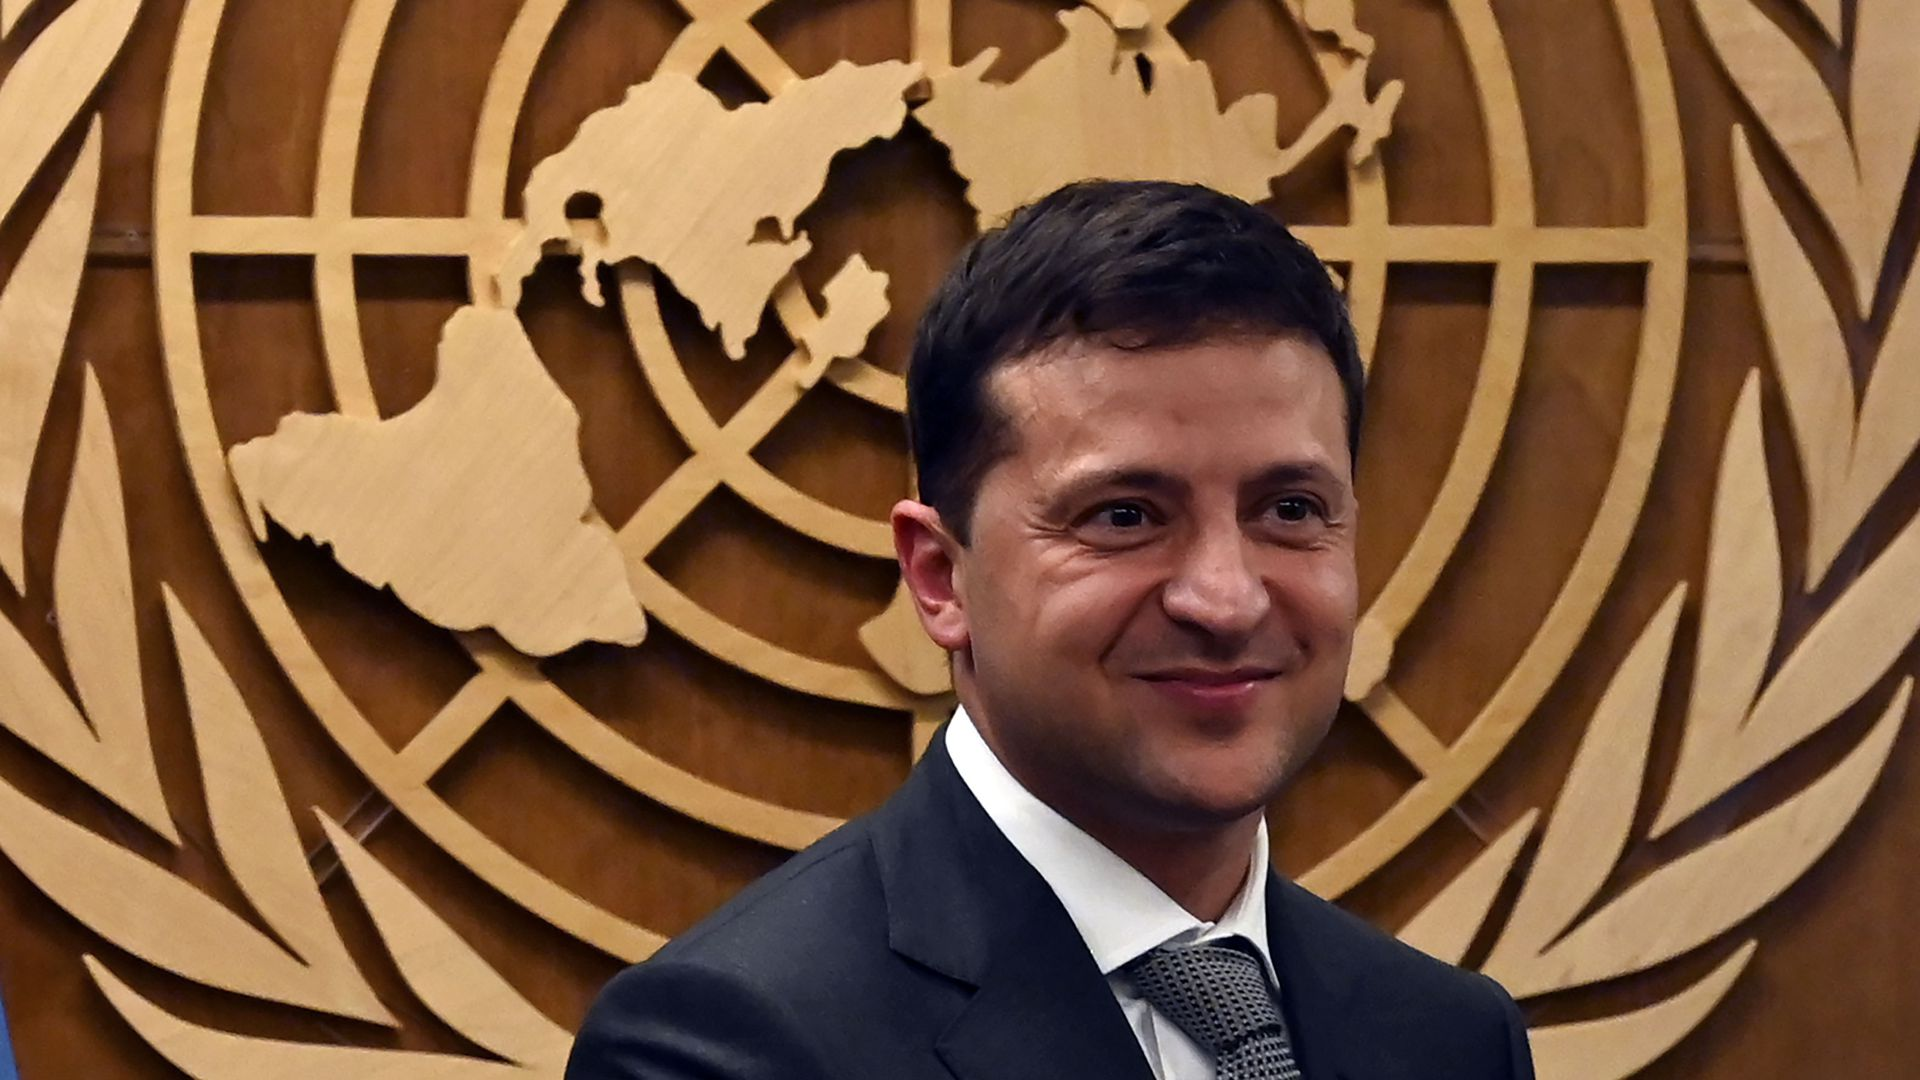 Zelensky in front of a wall-mounted UN logo